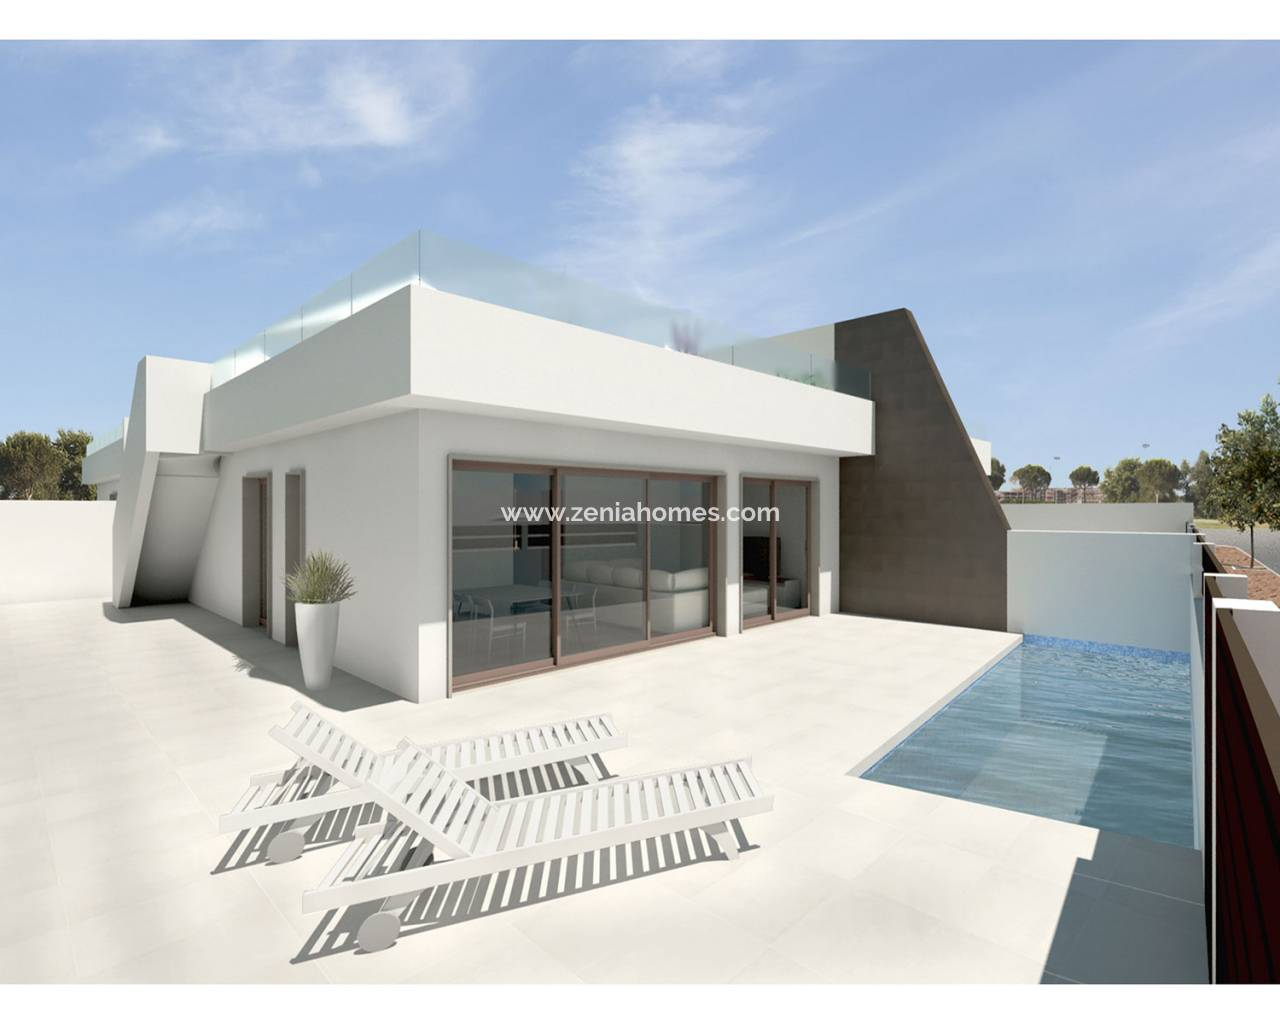 Semi-Detached Villa - Nouvelle construction - Pilar de la Horadada - Pilar de la Horadada